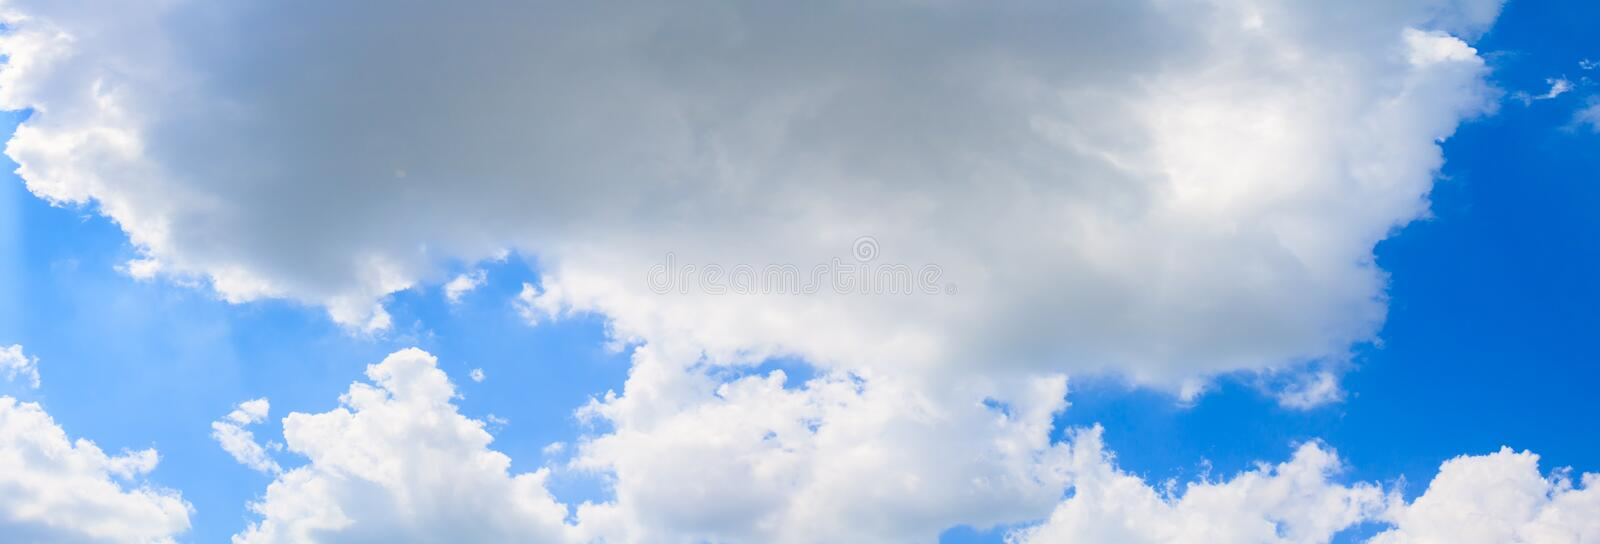 Panoramic sky and cloud summertime beautiful background stock image